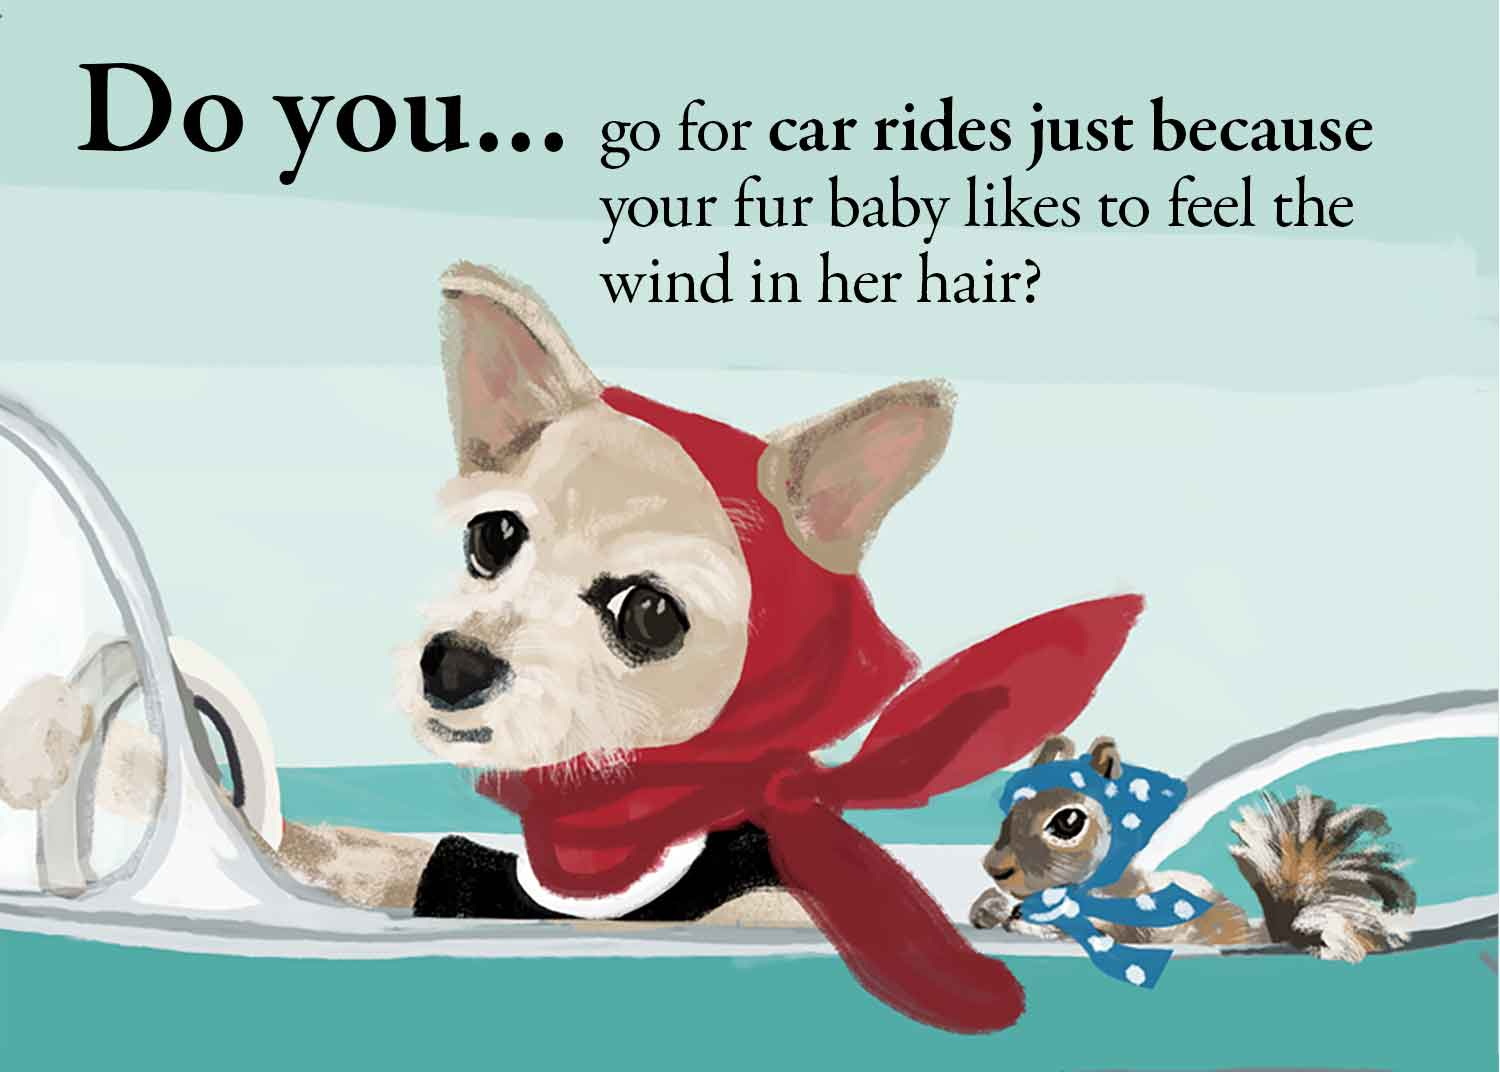 Do you take your dogs on car rides just because?